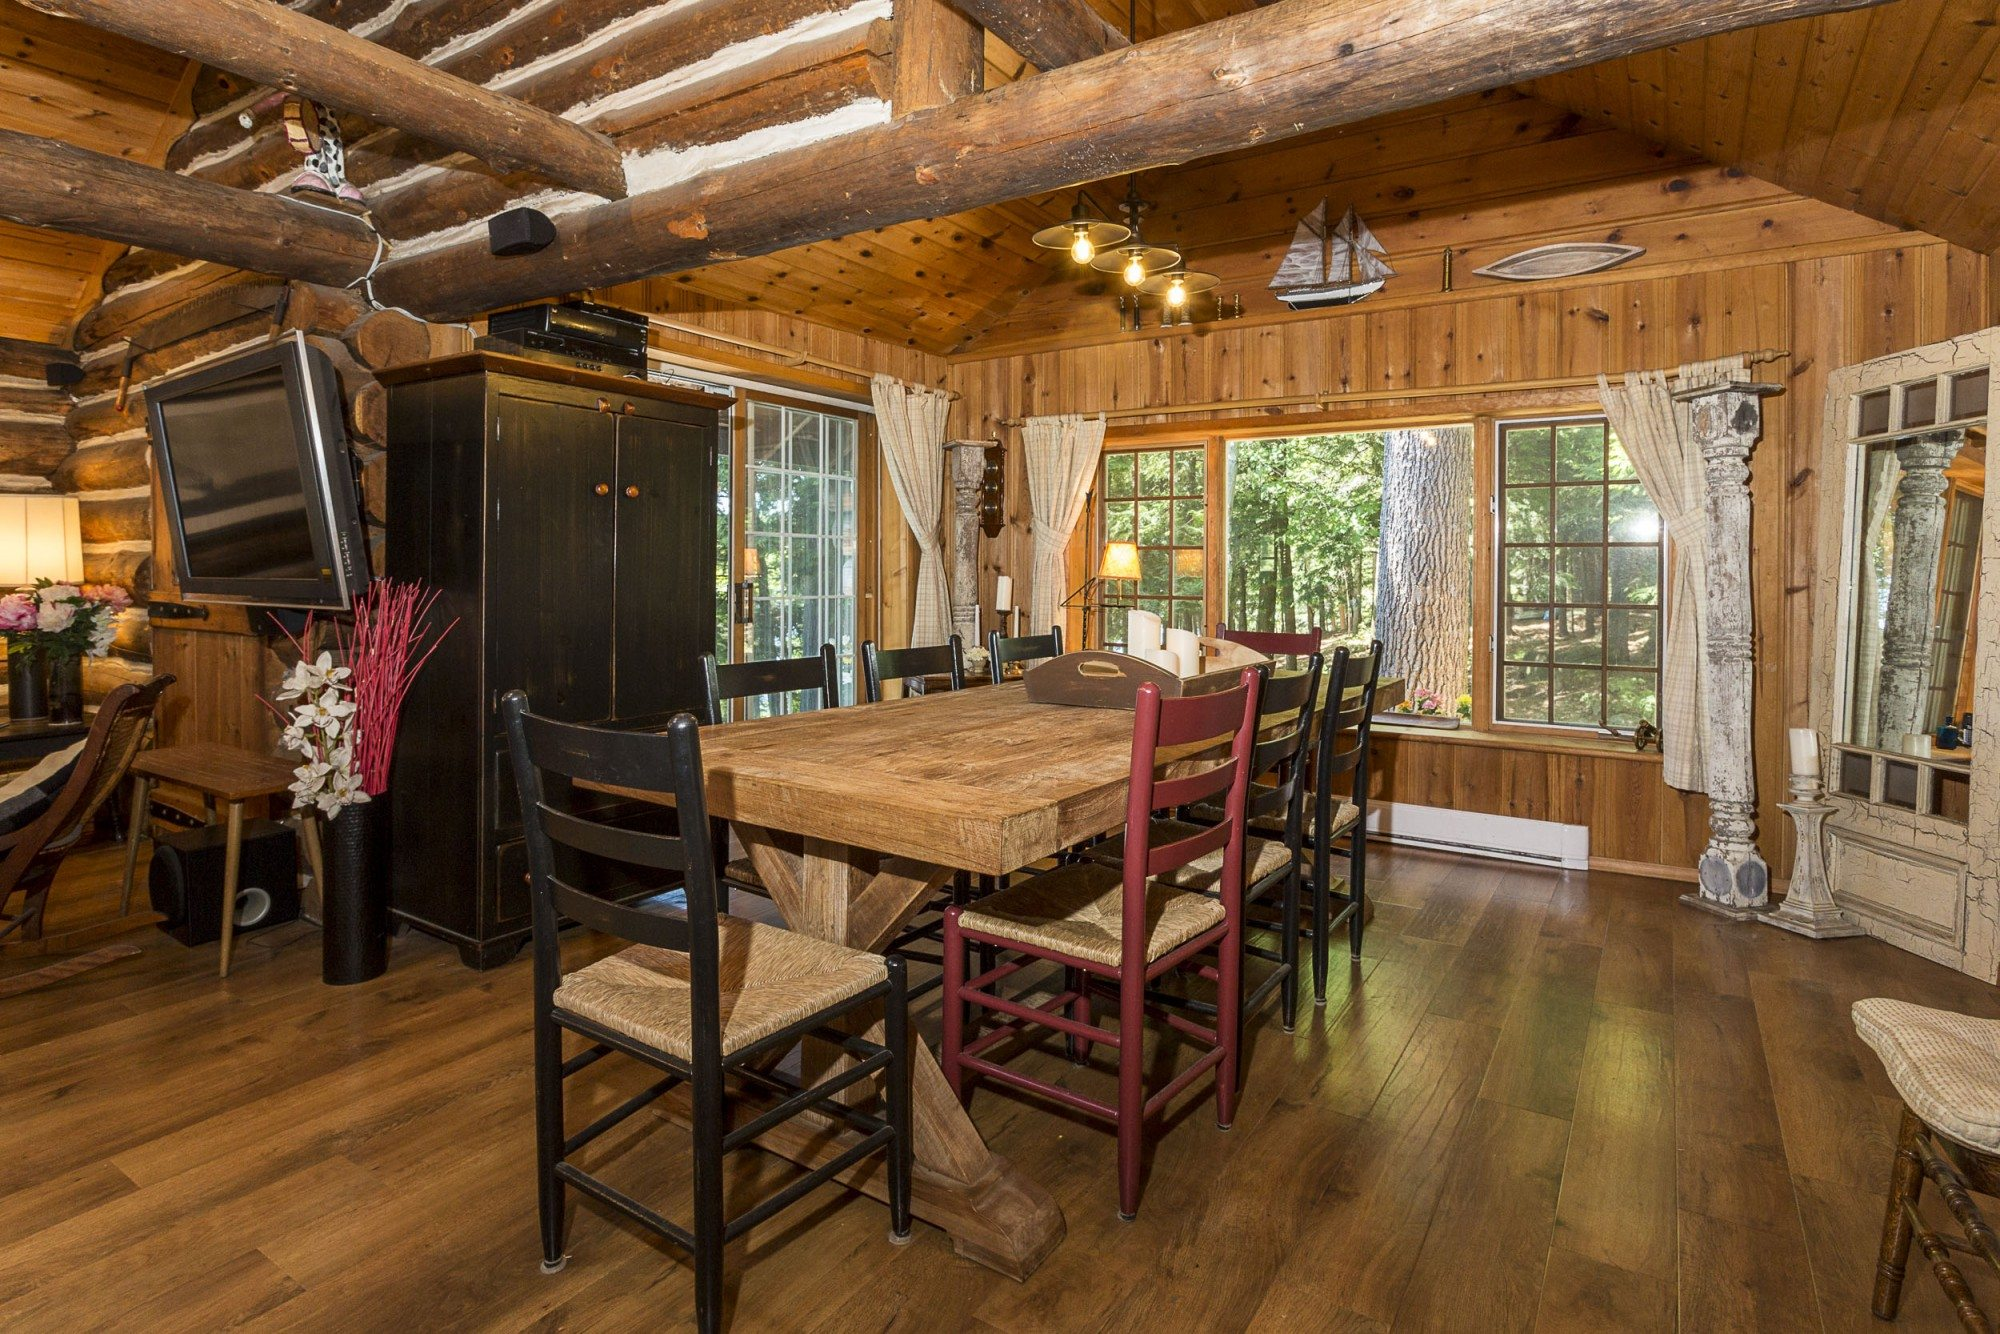 lake-of-bays-cottage-of-the-week-1057-montgomery-bay-road.2